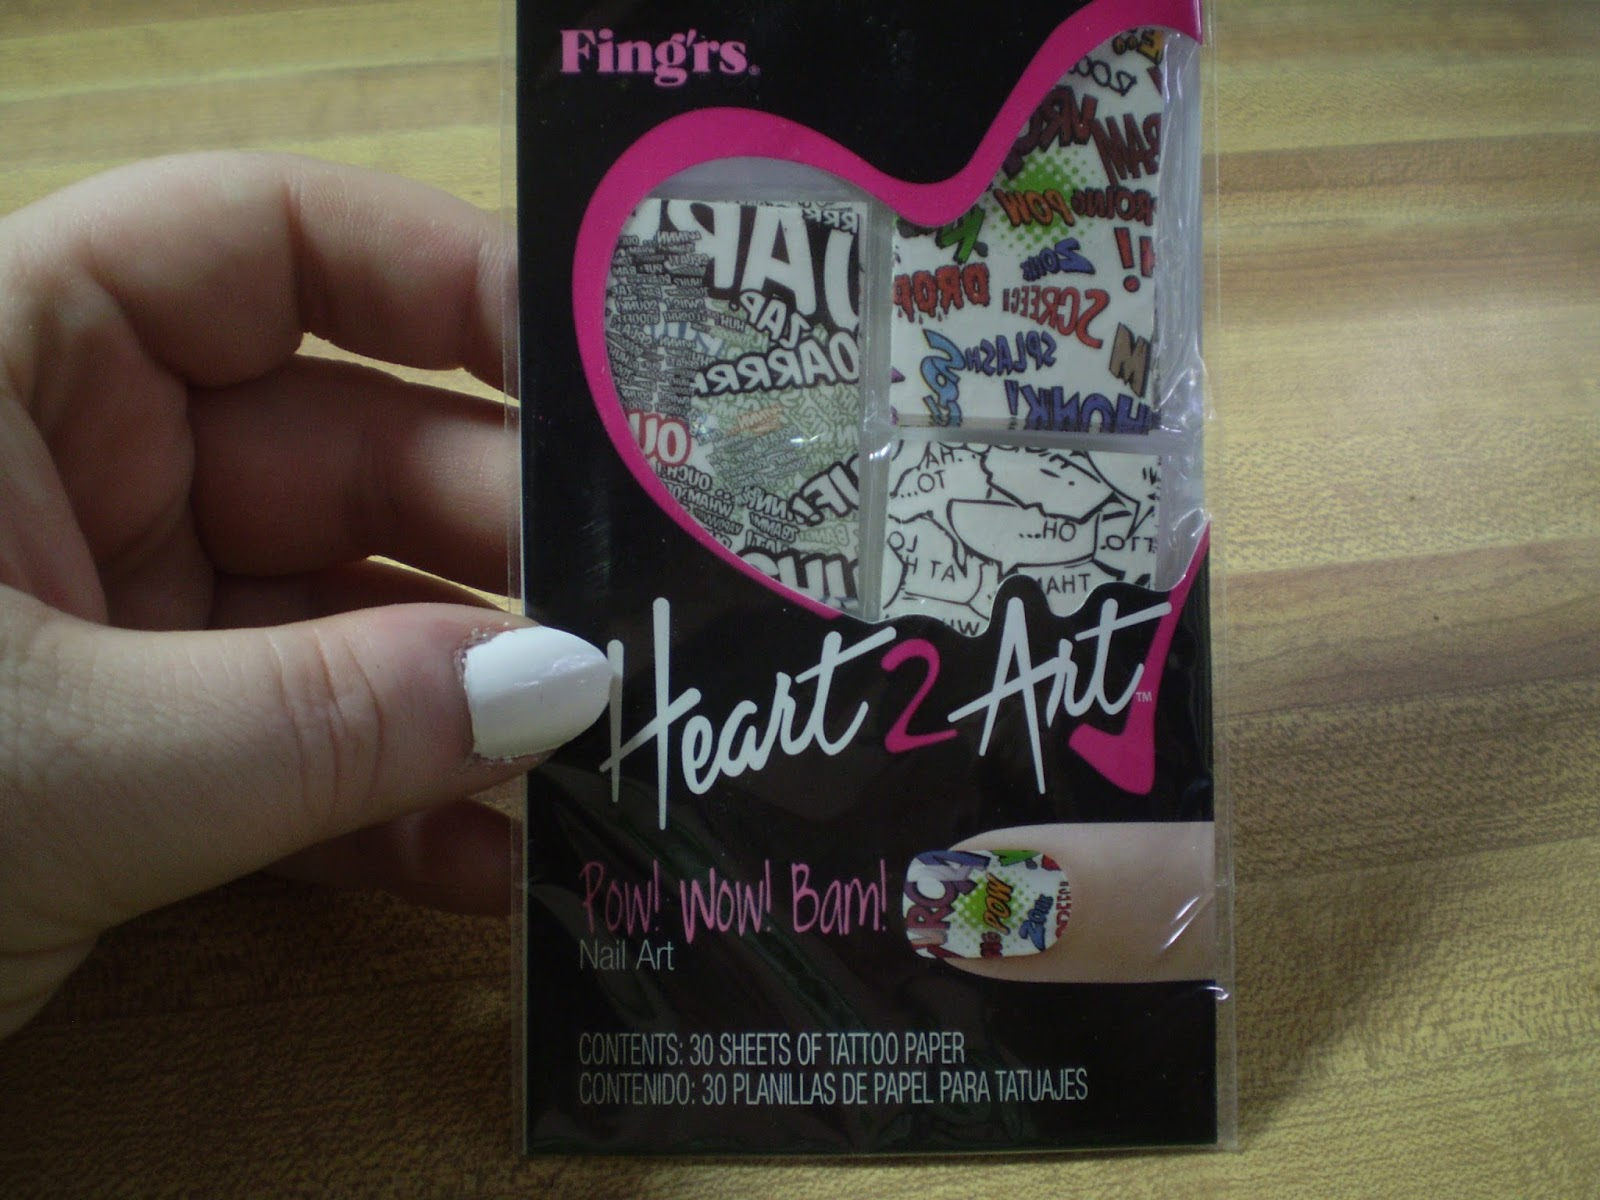 Nail art supplies walmart easy ombre nail manicure with fingrs edge nail tattoos images fing rs nail art prinsesfo Image collections